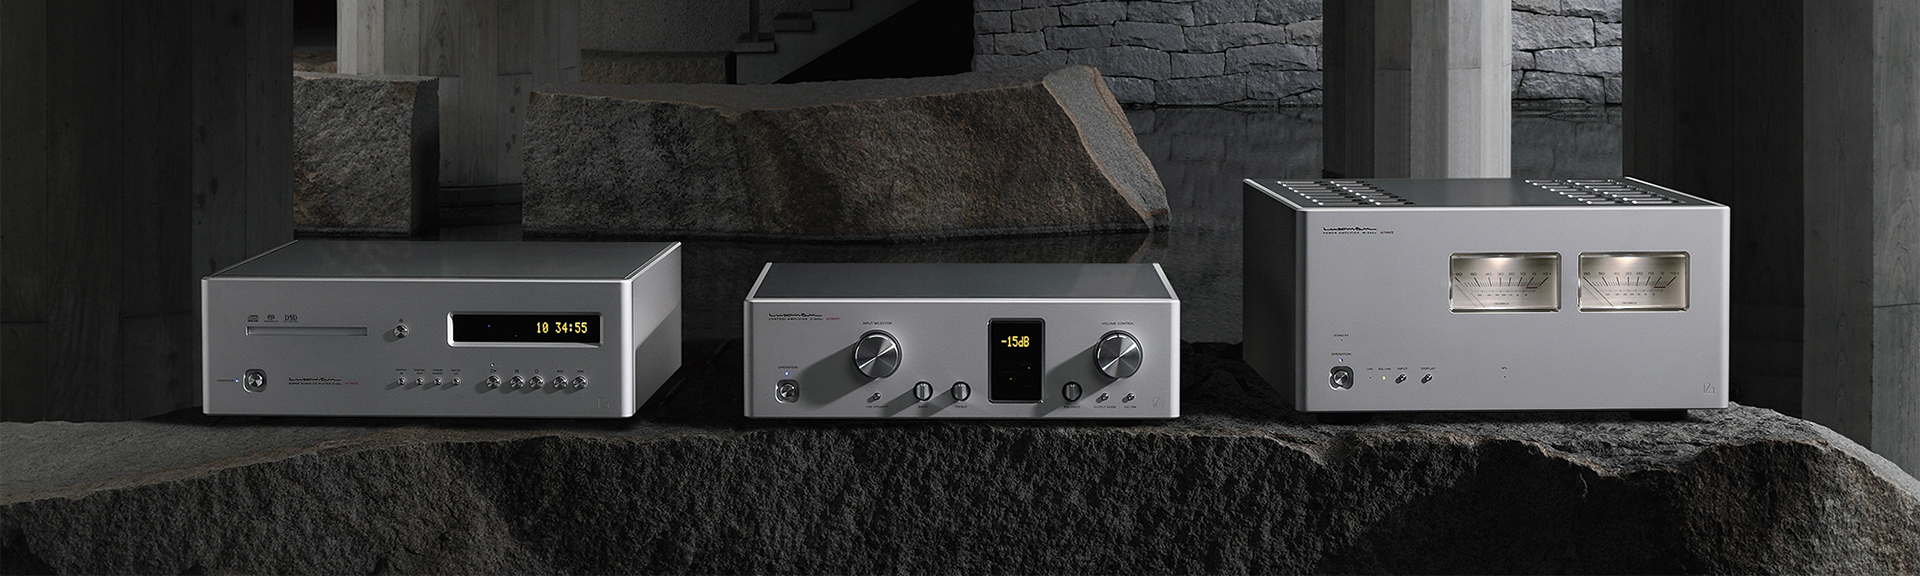 Luxman and Melco Products